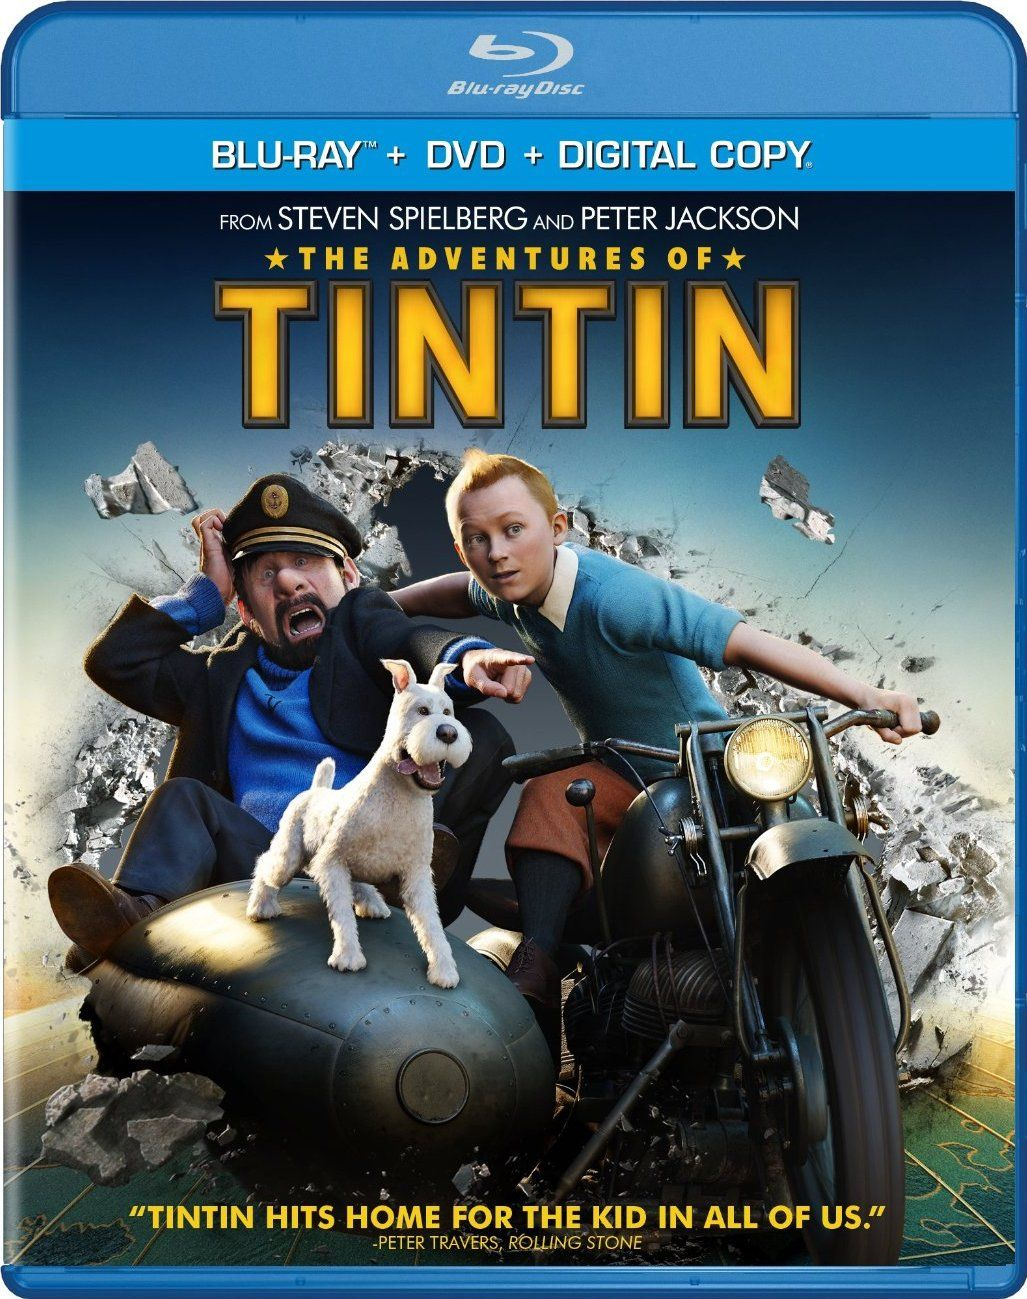 the adventures of tintin The adventures of tintin is a 2011 3d motion capture computer-animated epic adventure film based on the comic series of the same name directed by steven spielberg.